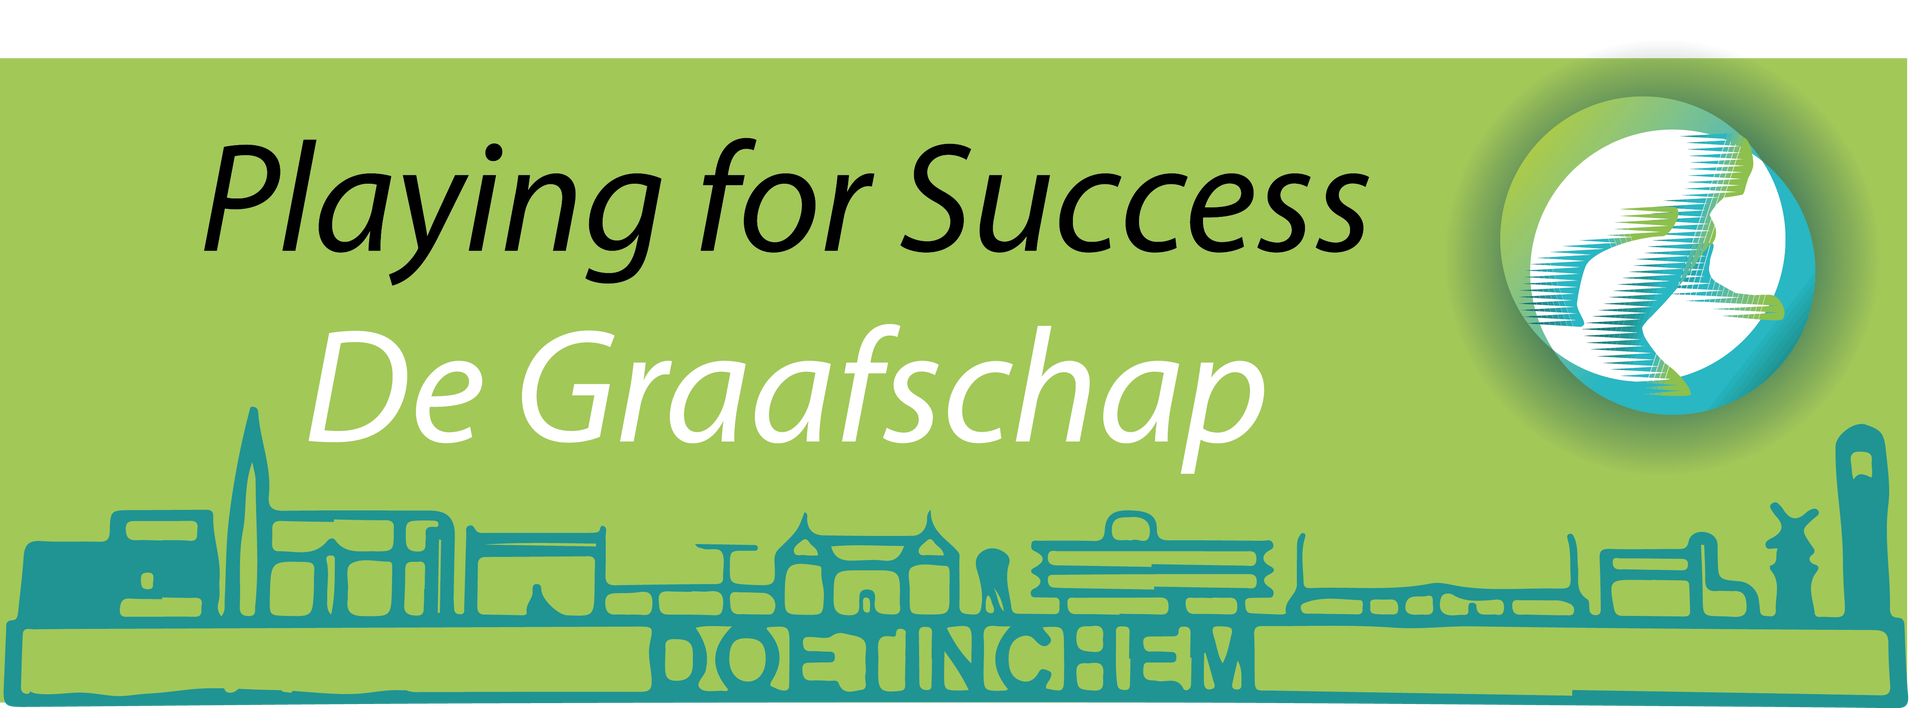 Playing for Success De Graafschap